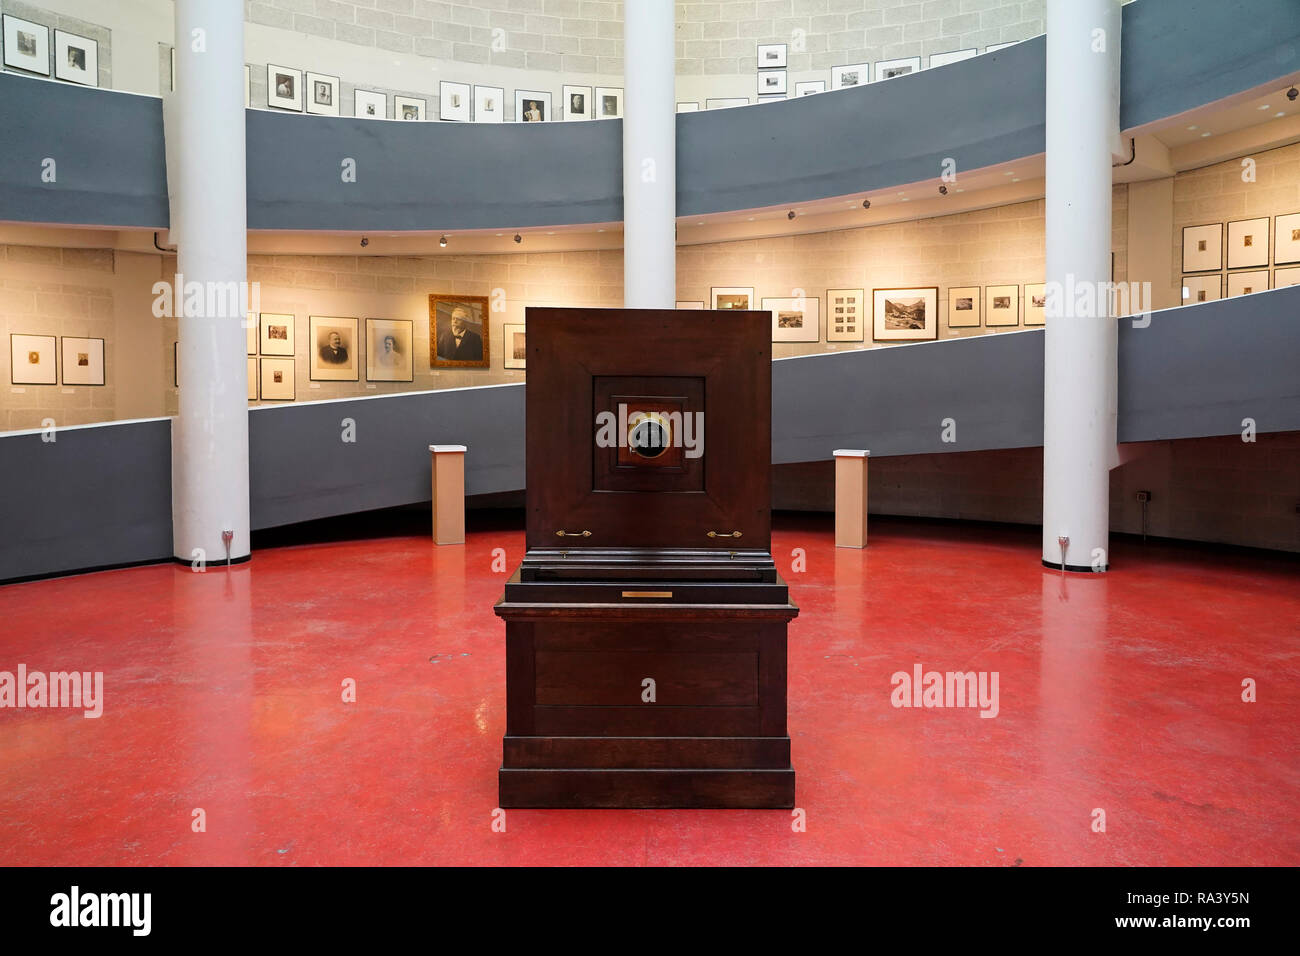 A historical repro camera from Hoh & Hahne Holux (Leipzig, 1895) exhibited at the museum of photography in Markleeberg, Saxony, Germany. - Stock Image